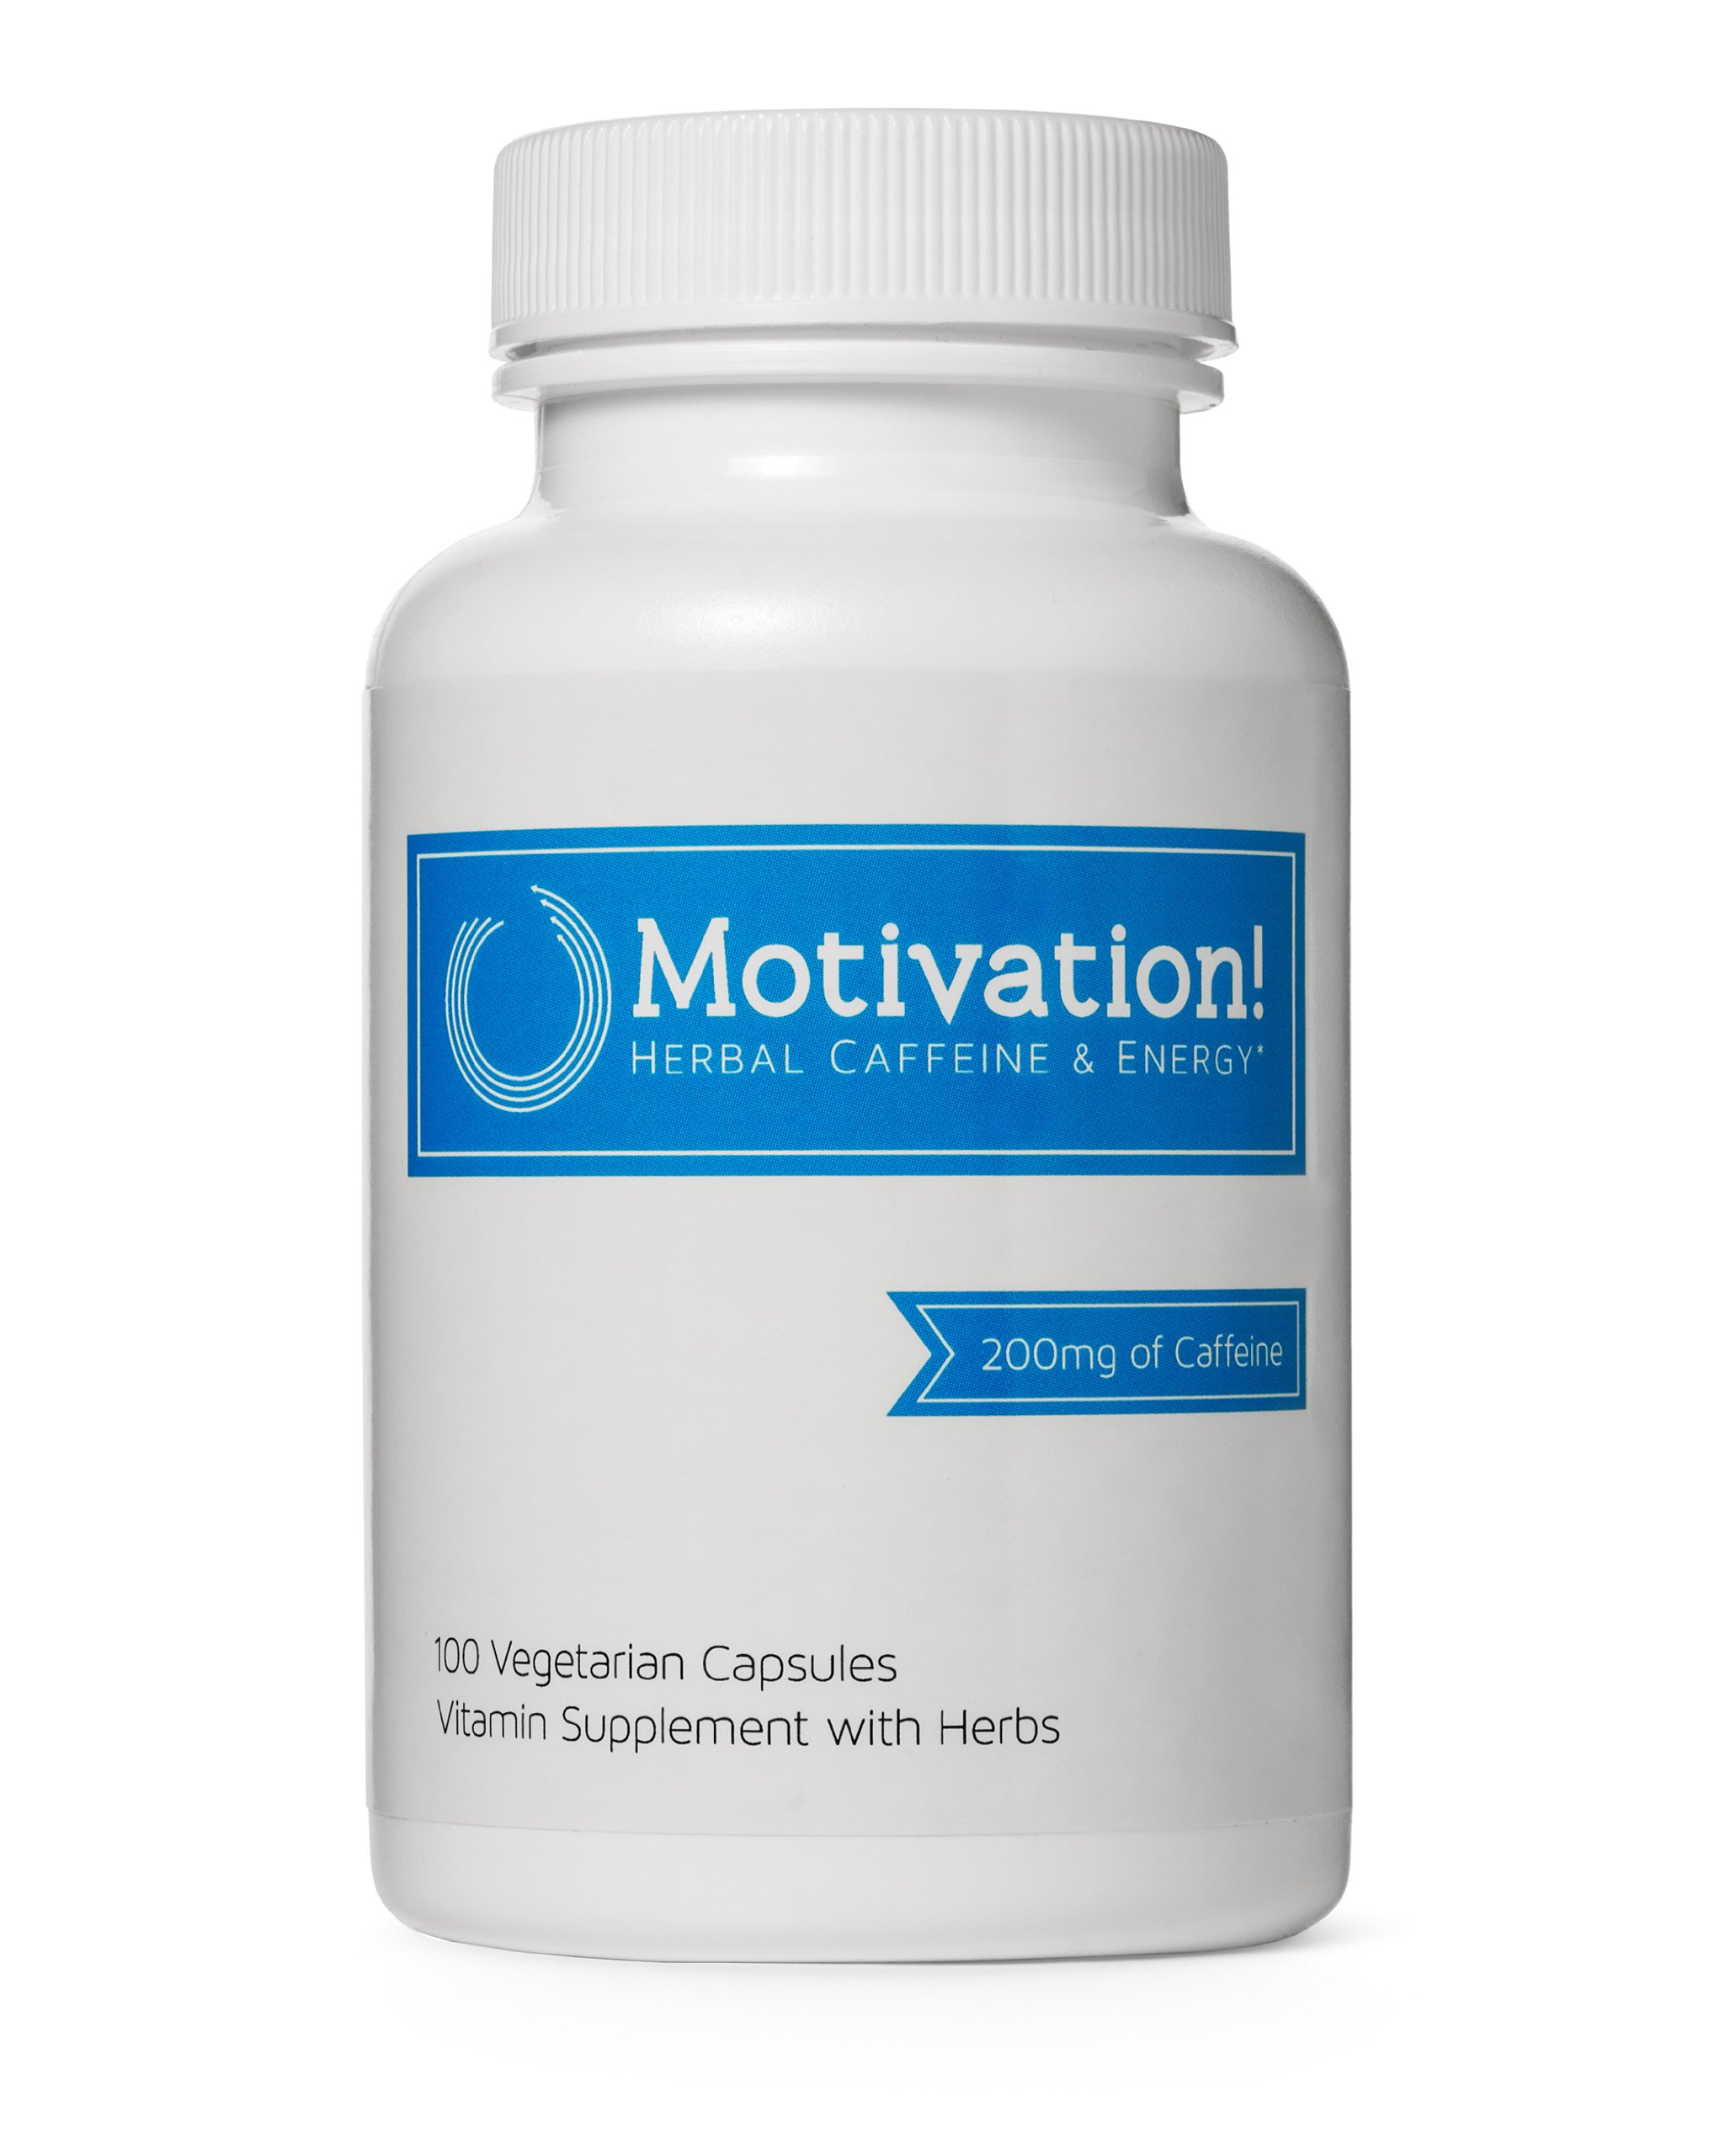 Motivation Herbal Caffeine Energy Vitamin Supplement, 100 Capsules